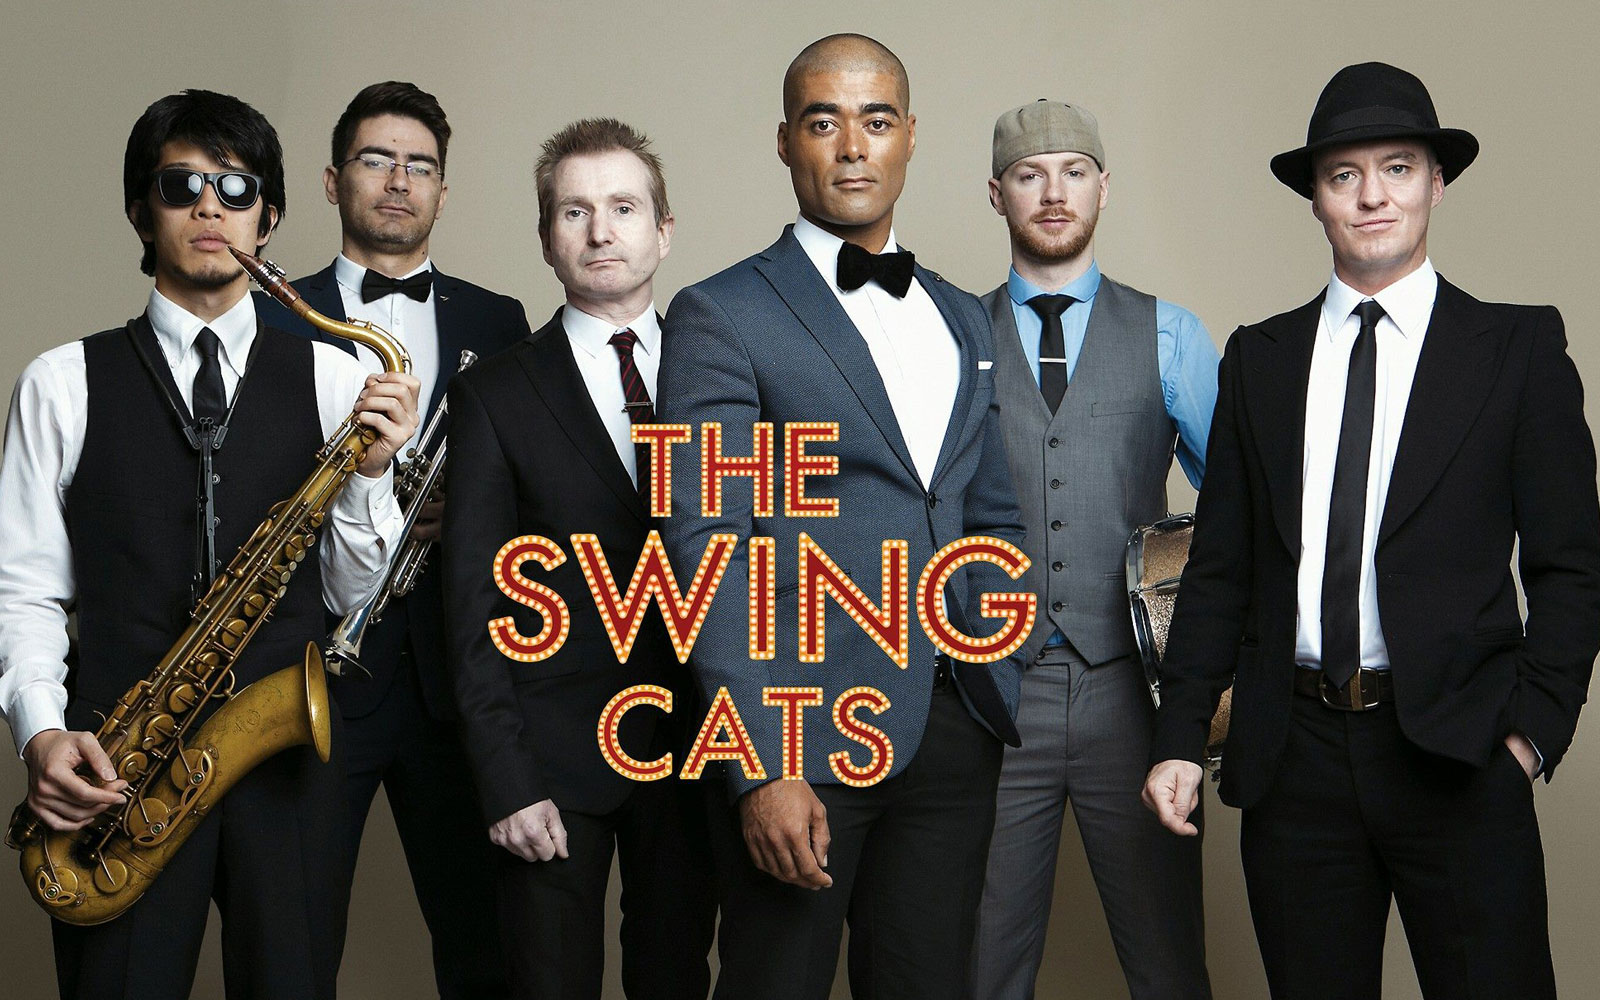 The Swing Cats